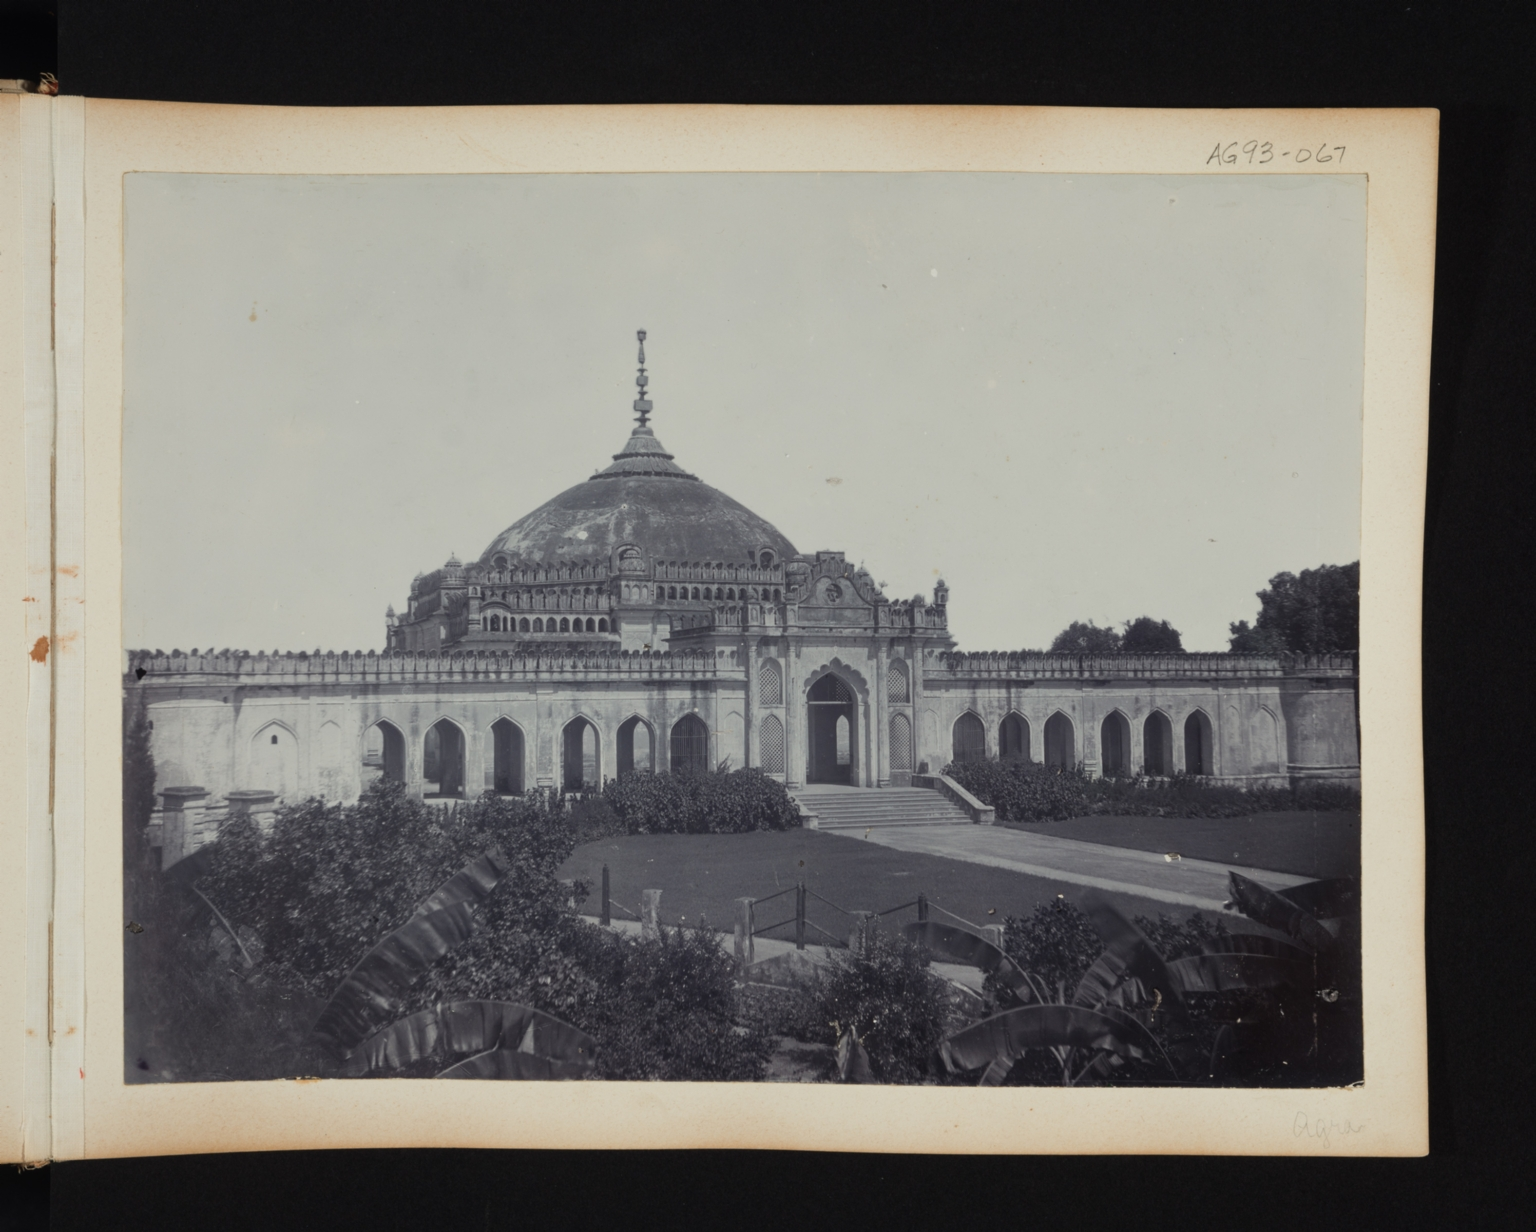 Building exterior of a domed building in Agra, India.